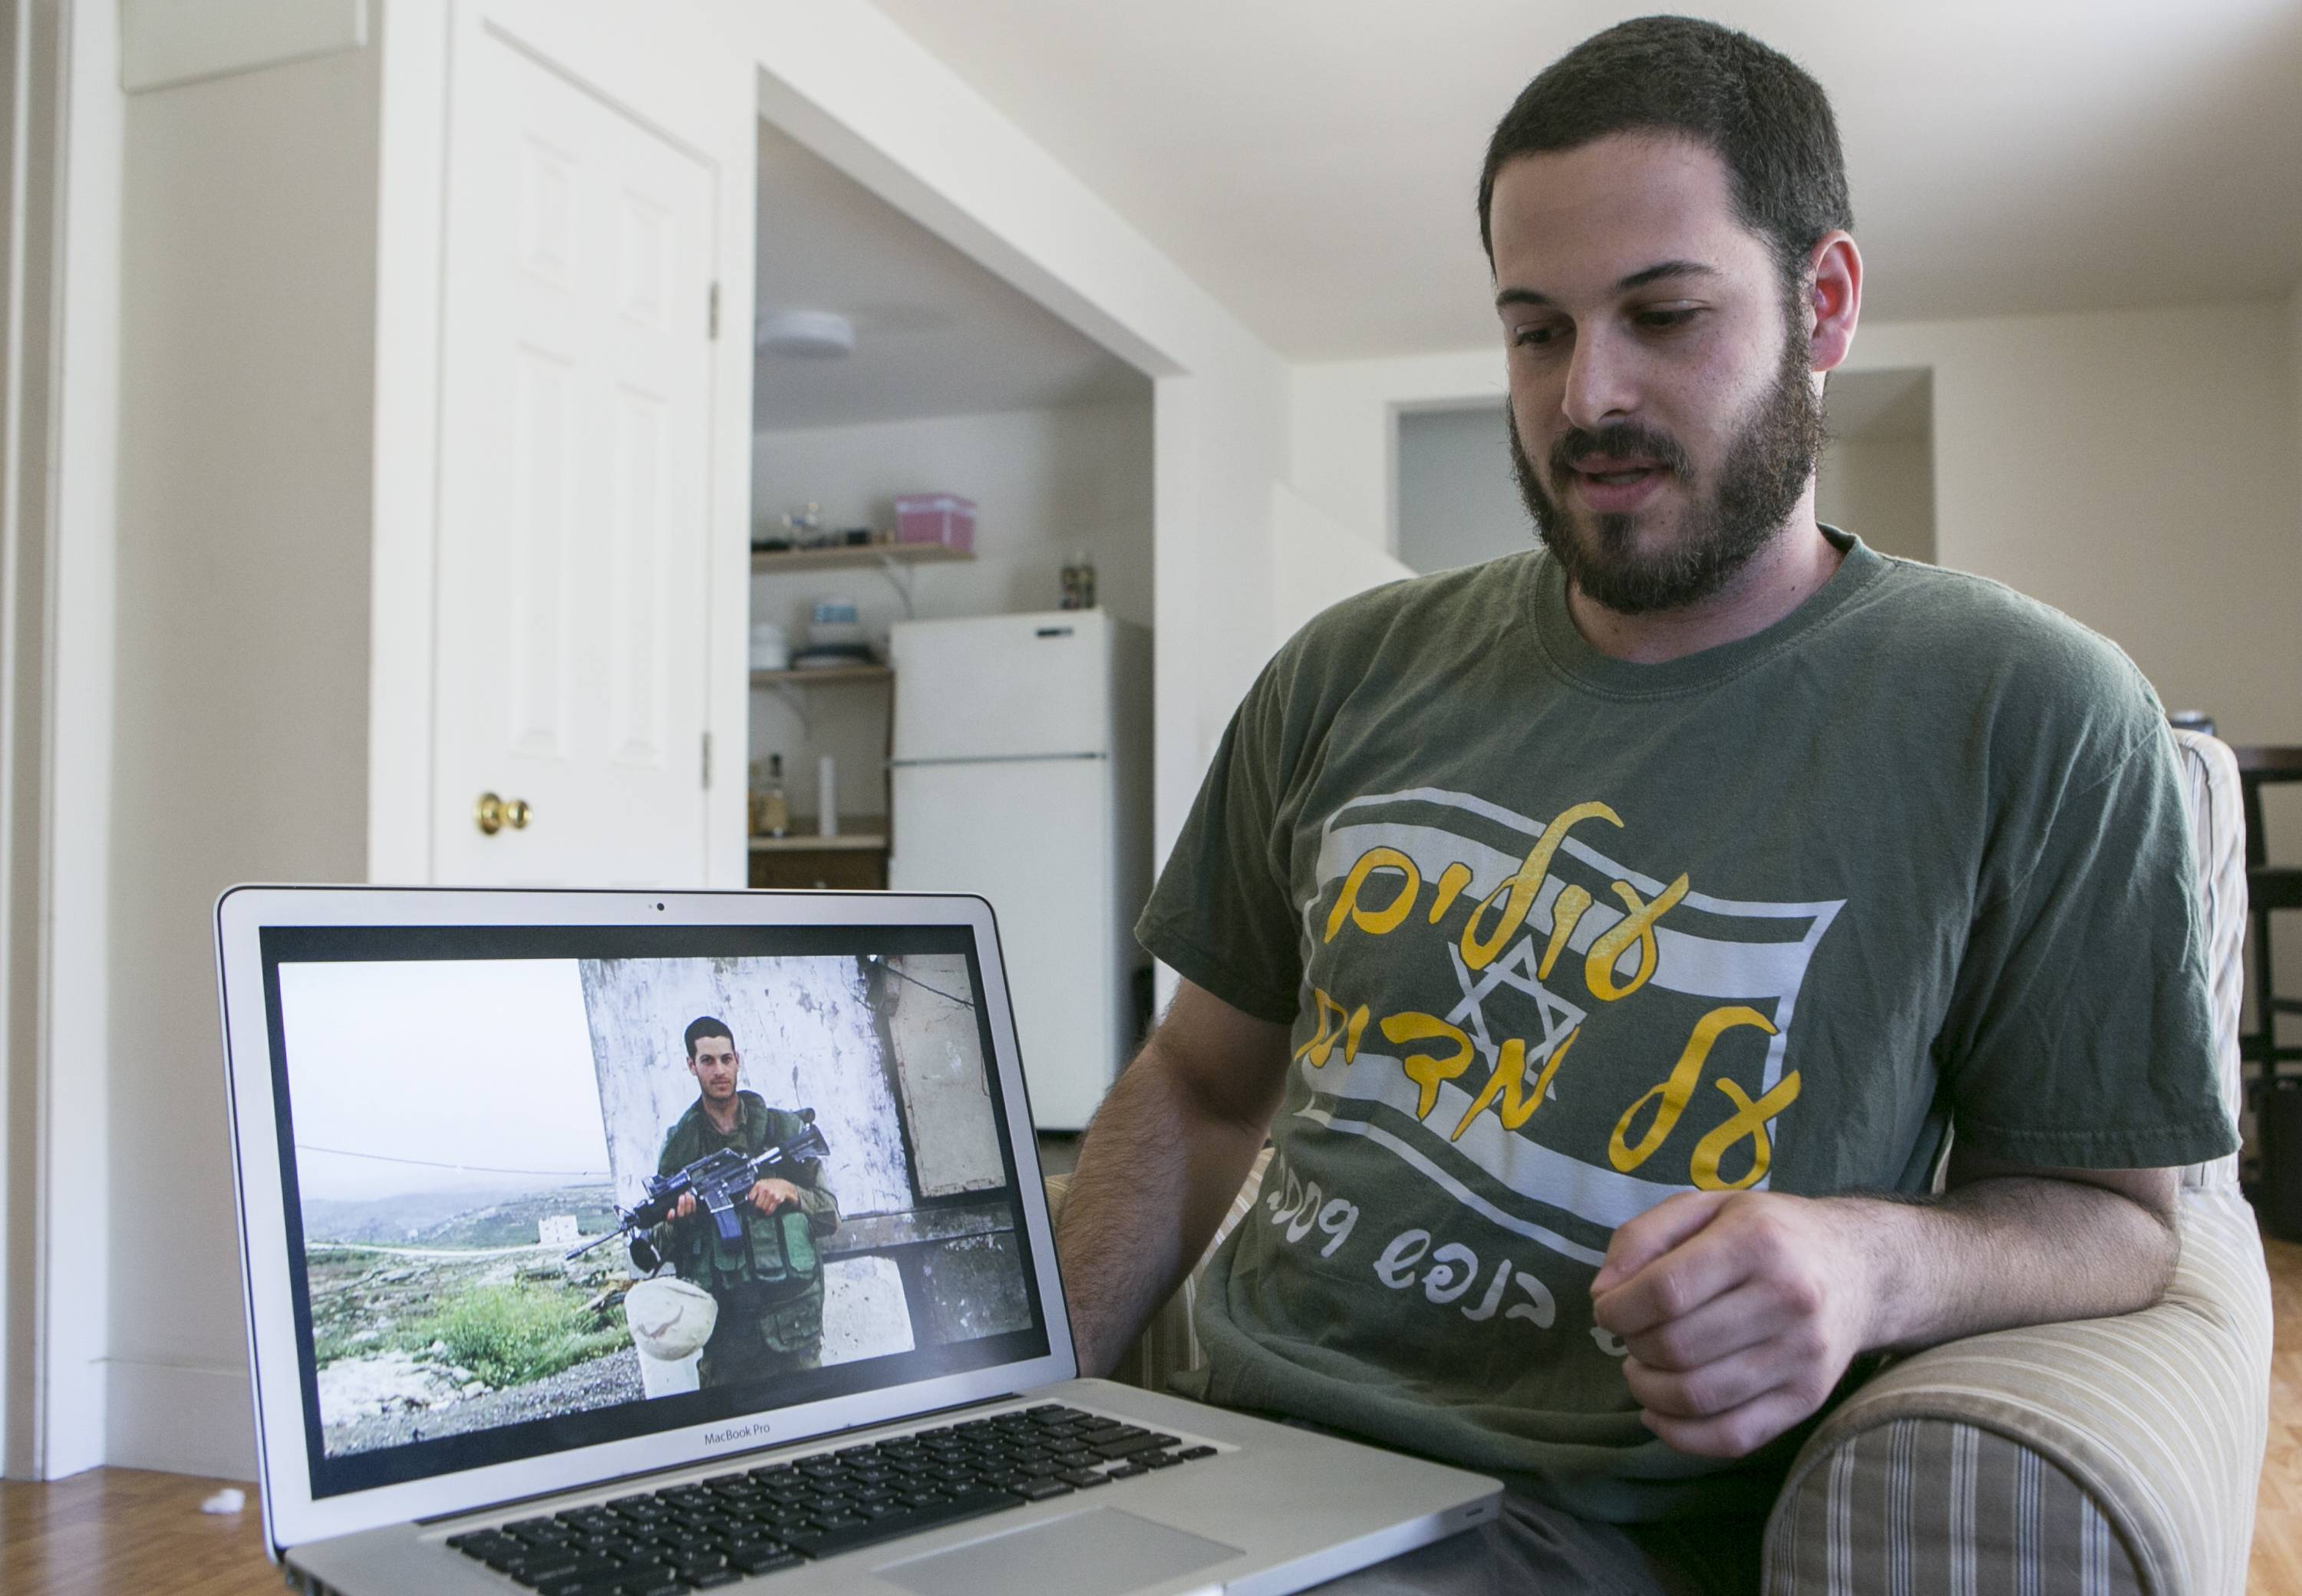 Mike Fishbein, a U.S.-born soldier from Los Angeles who fought for the Israel Defense Forces with a photo of himself from when he served in the IDF.